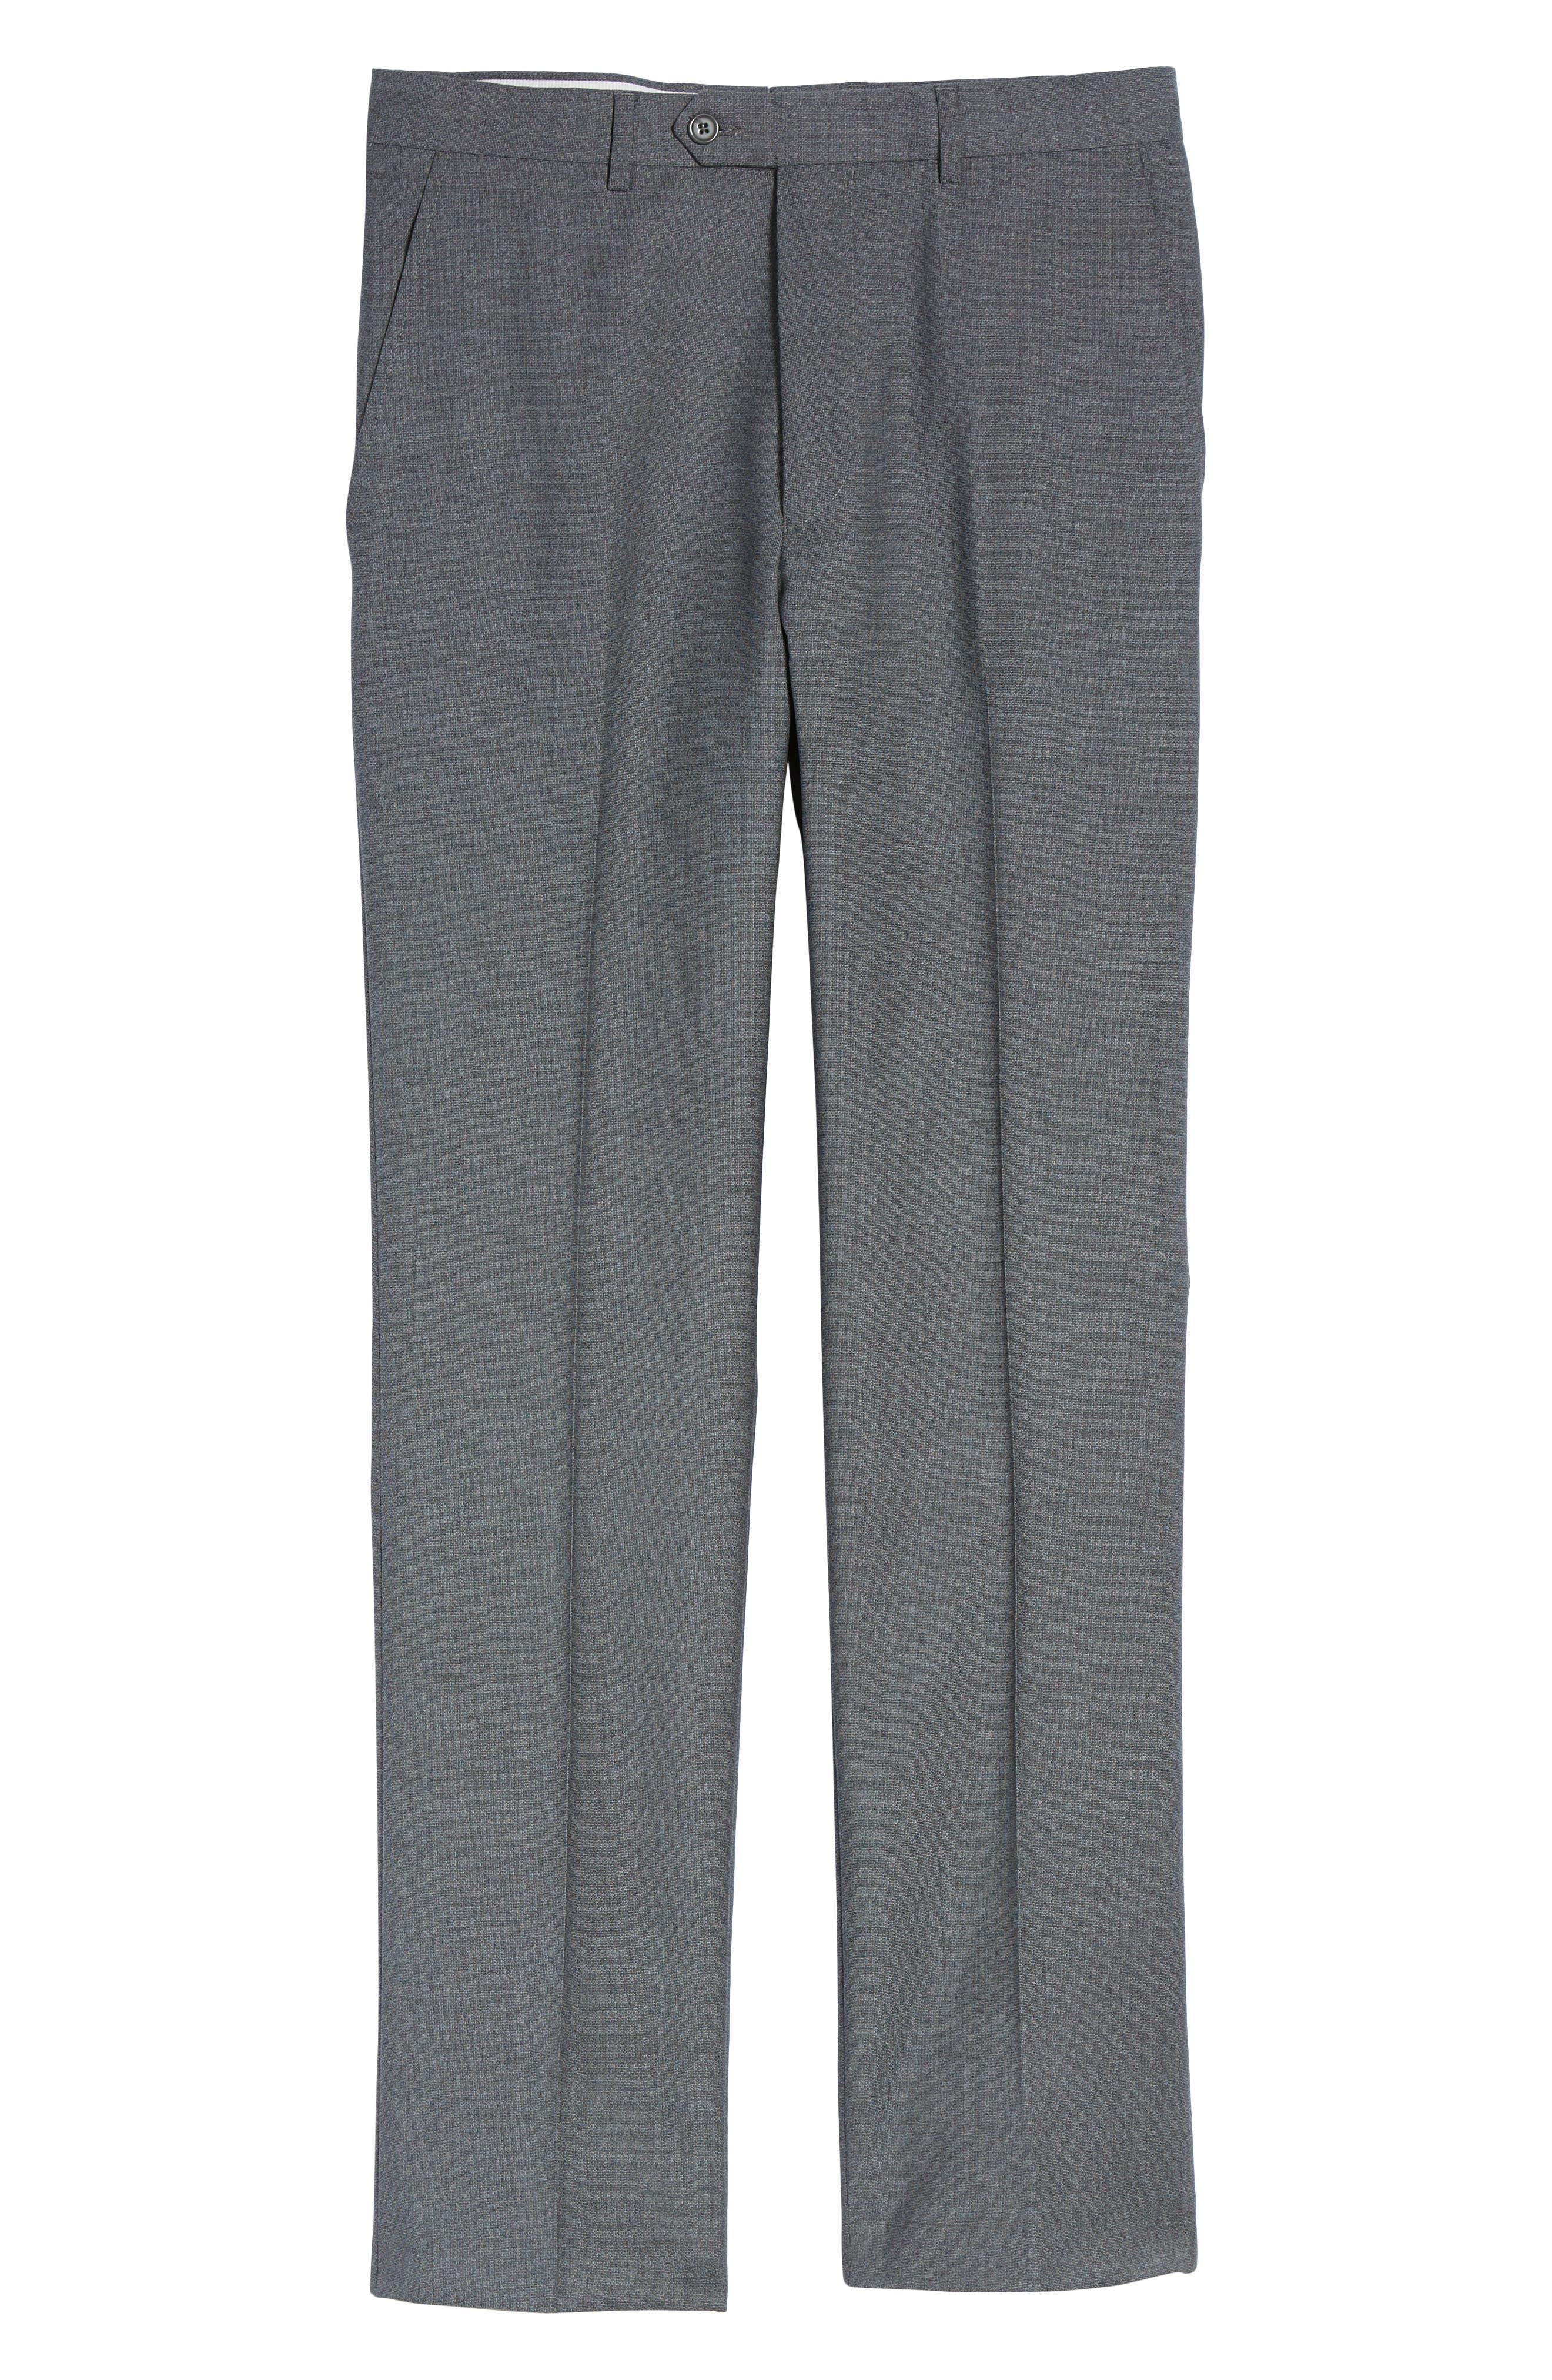 SANTORELLI,                             Flat Front Solid Wool Trousers,                             Alternate thumbnail 6, color,                             020